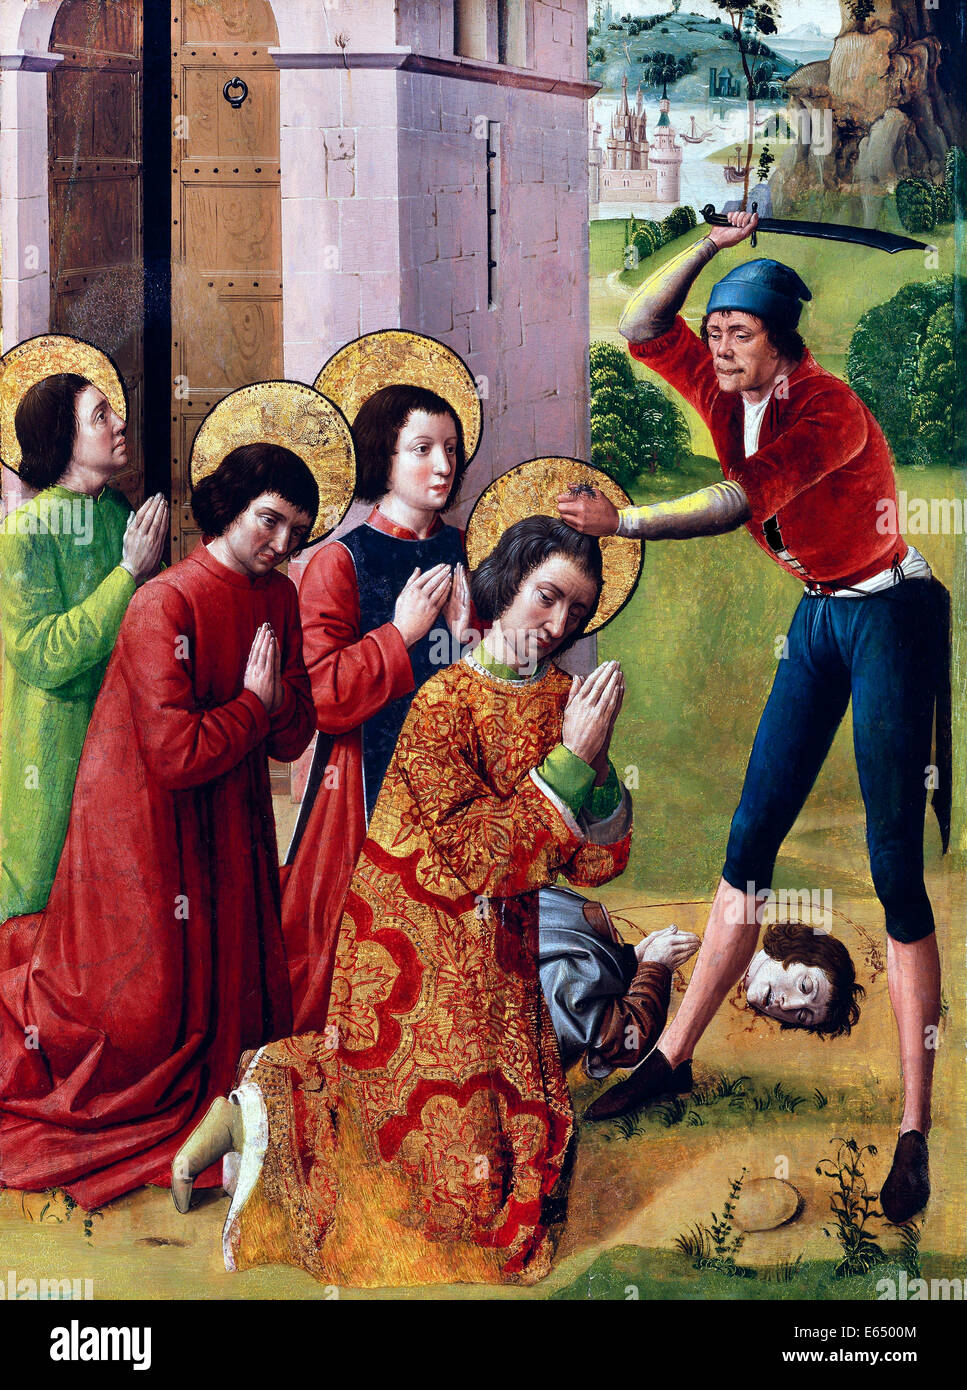 Monogrammist G.E.C., Martyrdom of Saints Cosmas and Damian with their Three Brothers, Part of an Altarpiece 1560 - Stock Image